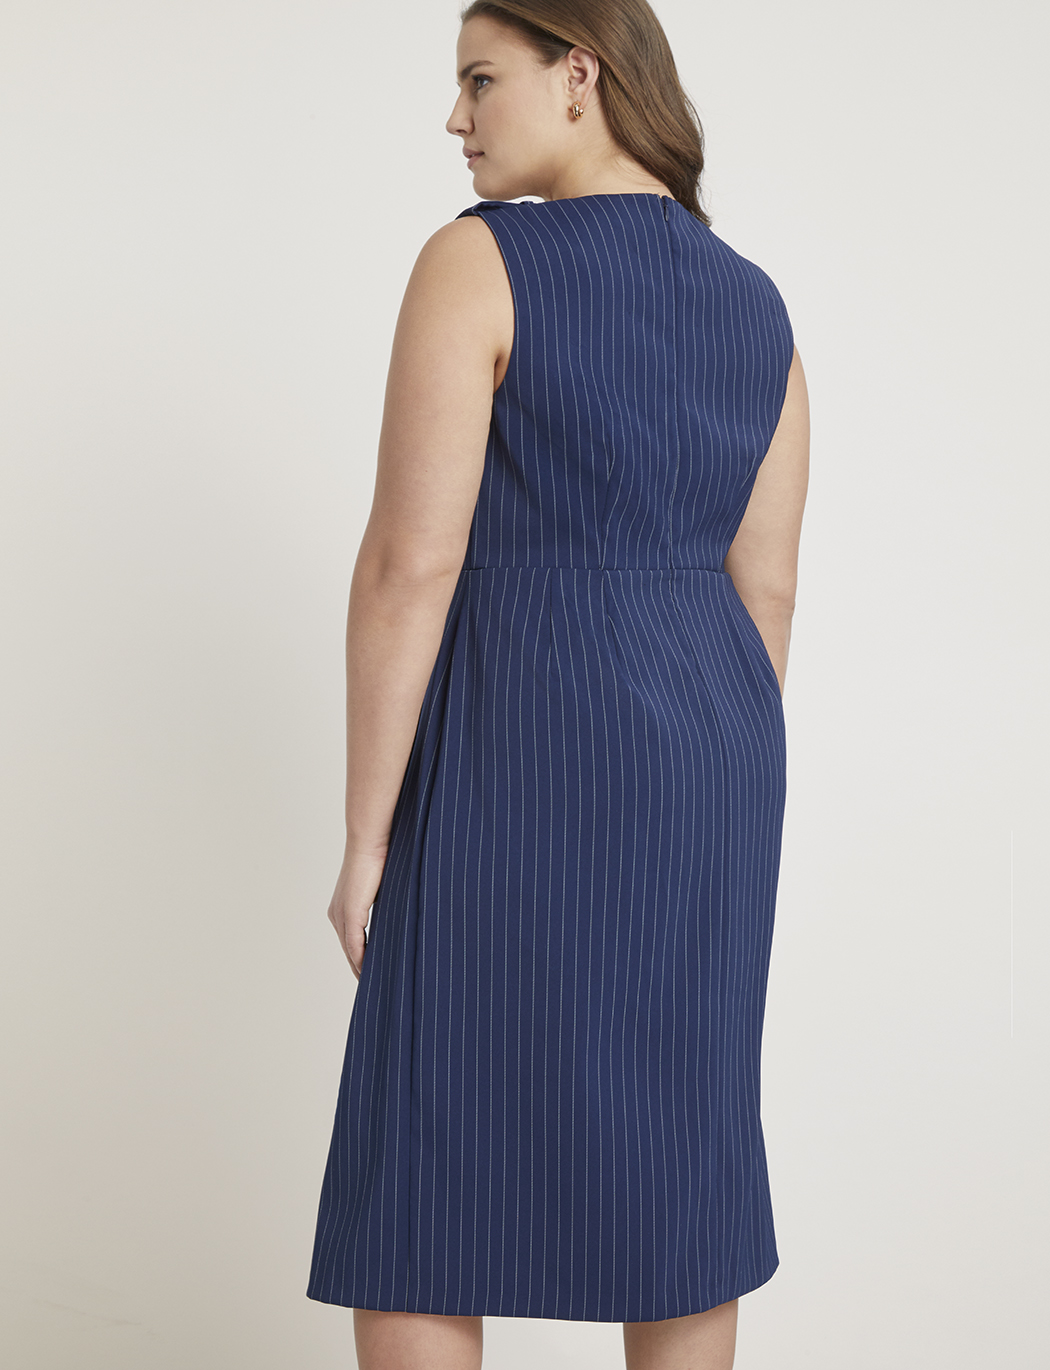 Jason Wu/ELOQUII Pinstripe Origami Sheath Dress